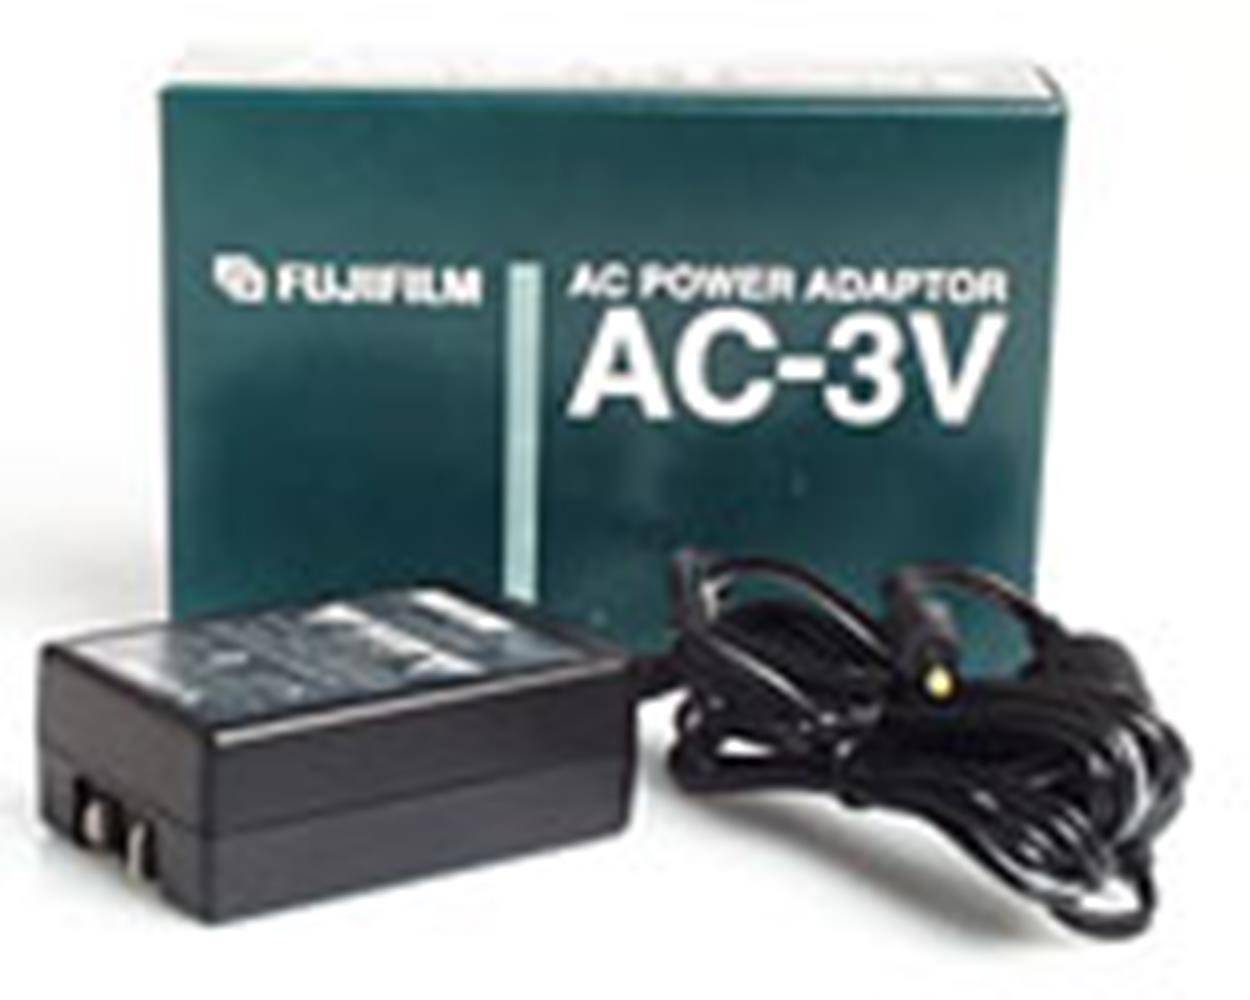 FUJI AC-3V AC ADAPTER - A SERIES FINEPIX